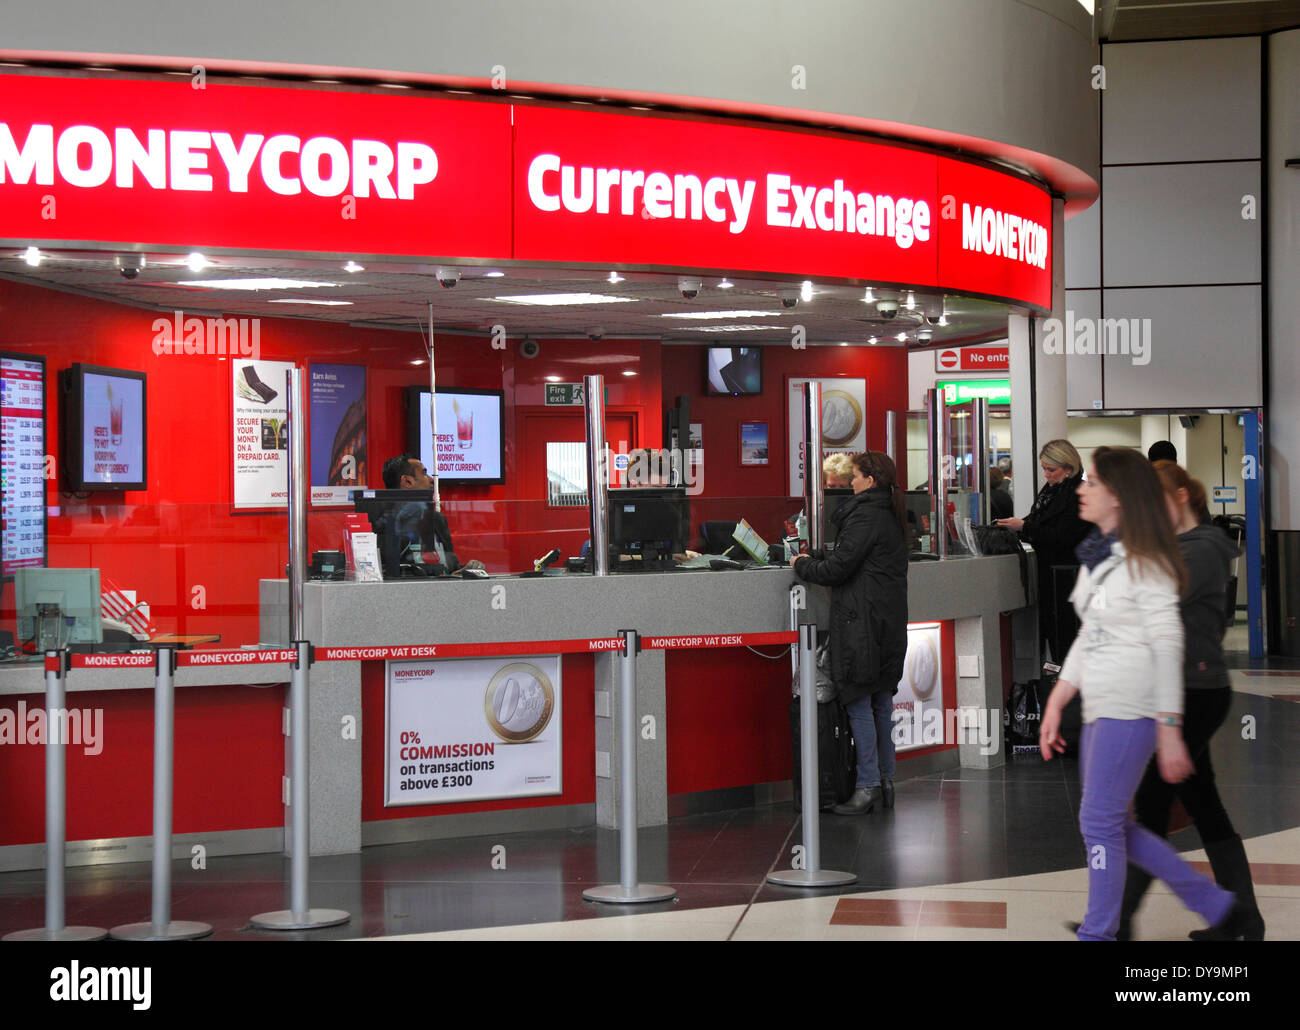 Currency Exchange Bureau at Gatwick Airport - Stock Image